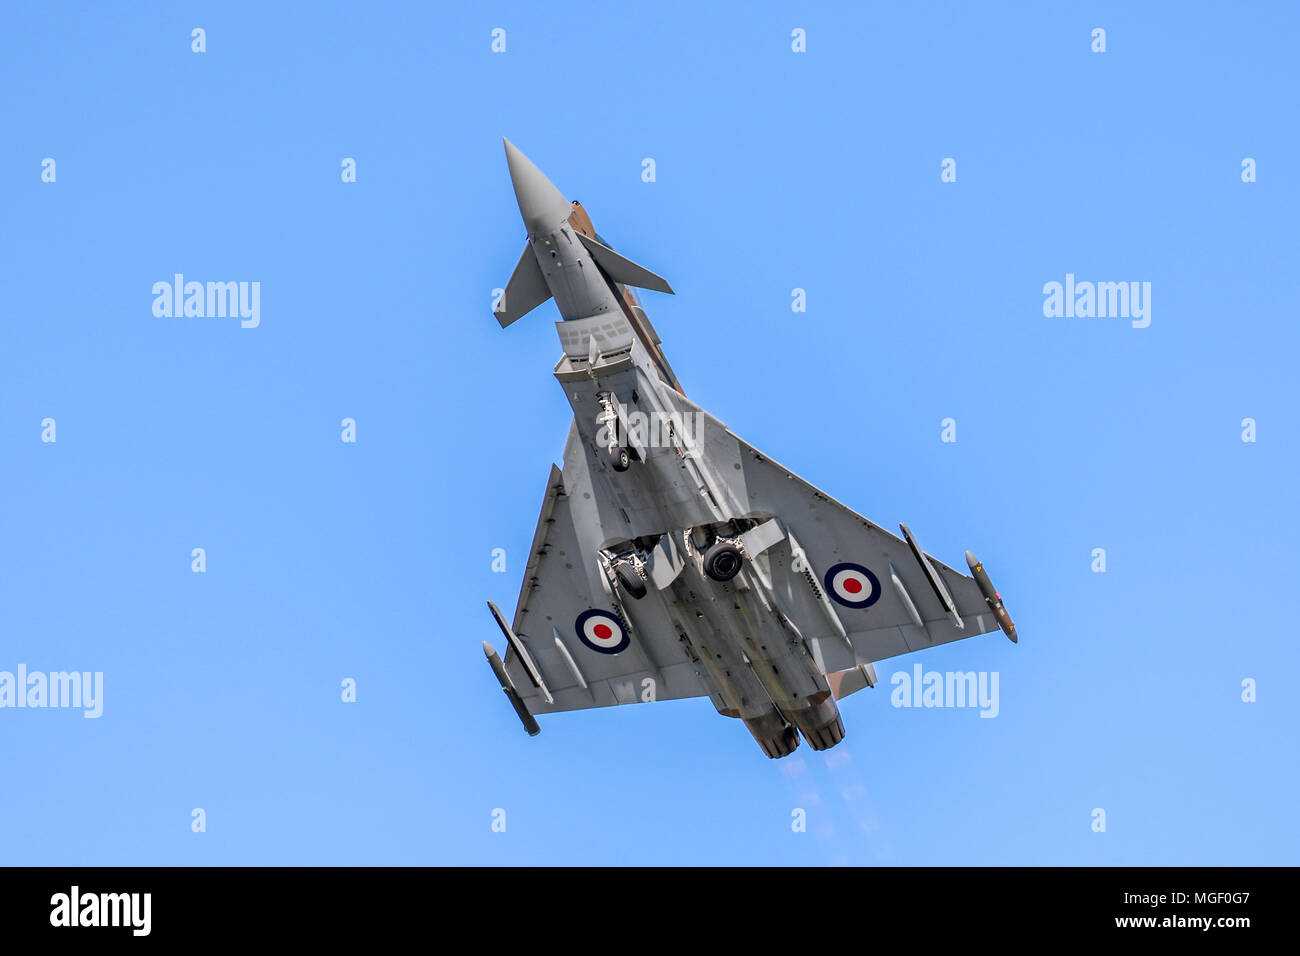 RAF Coningsby EF-2000 typhoon FGR4 Painted to commemorate 75yrs since the Battle of Britain Flying at Royal Air Force Fairford Airshow (RIAT) - Stock Image